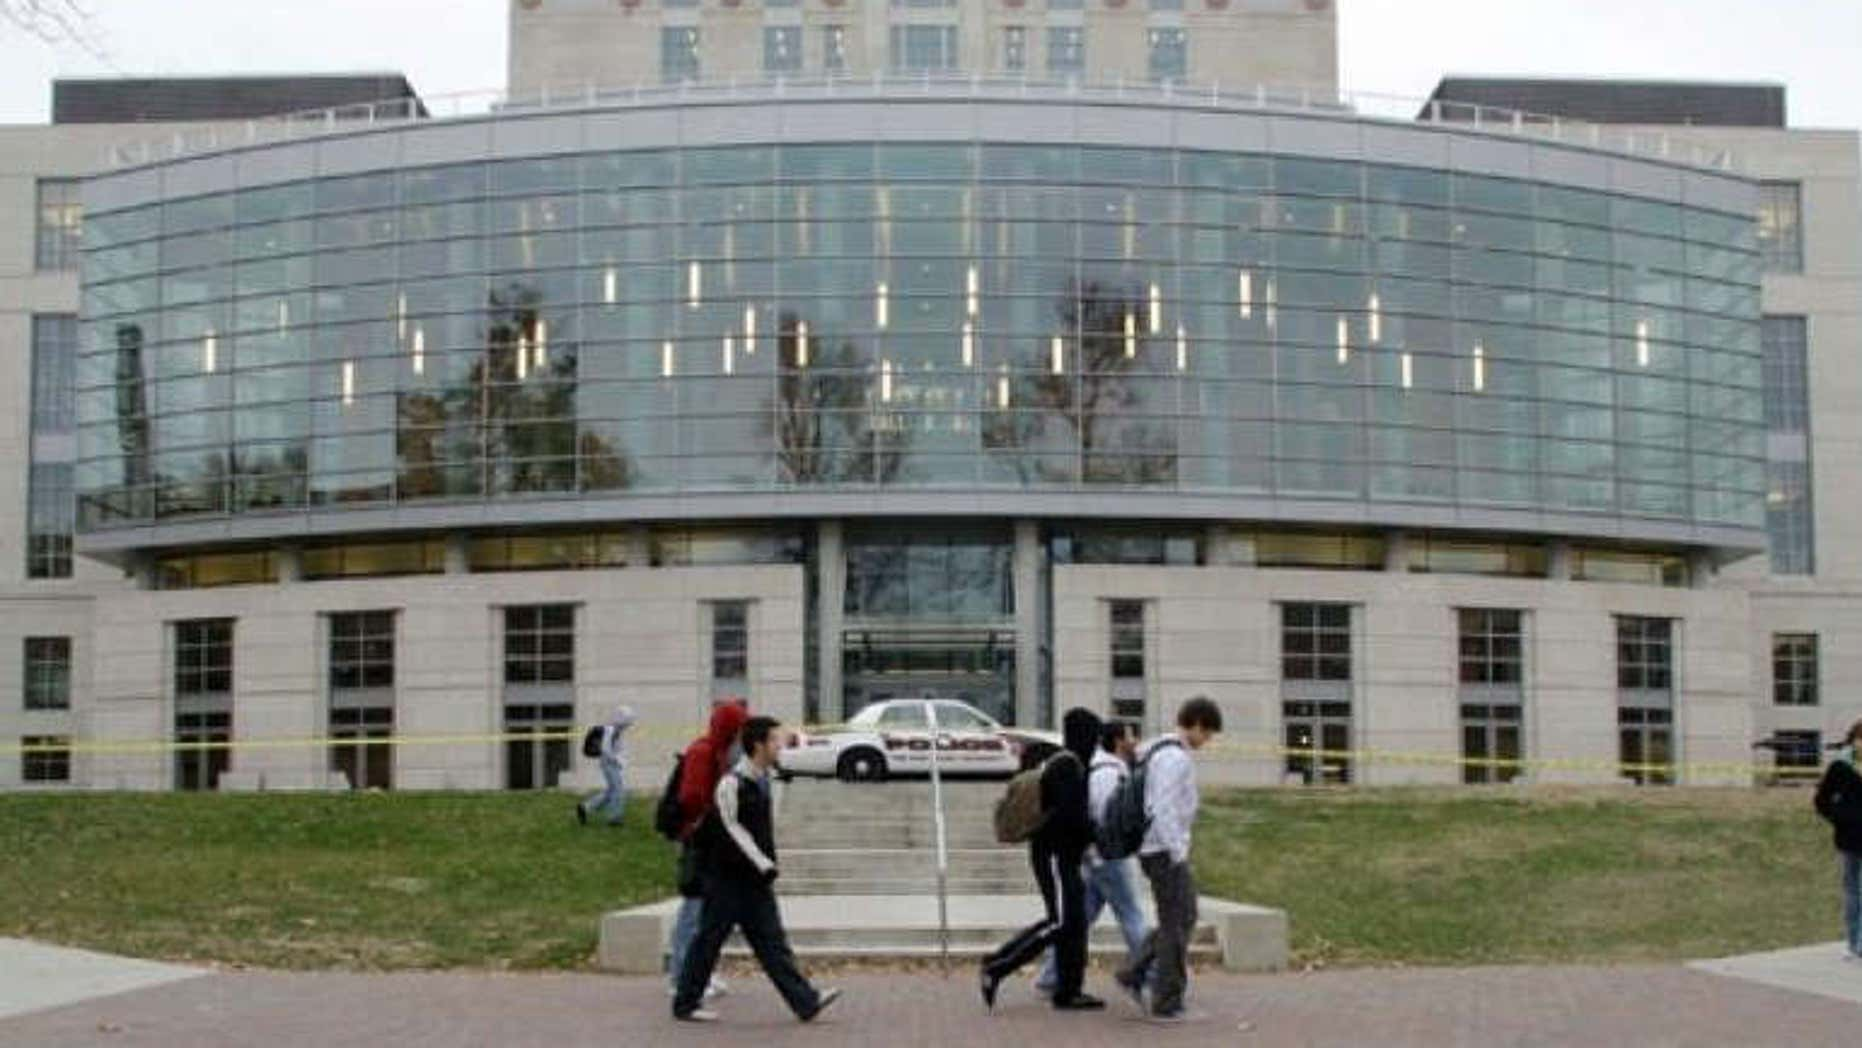 Nov. 16, 2010: Students walk past a closed library at Ohio State University in Columbus, Ohio. The school evacuated the main library, along with three other academic buildings, after the FBI received an e-mailed bomb threat targeting the university.